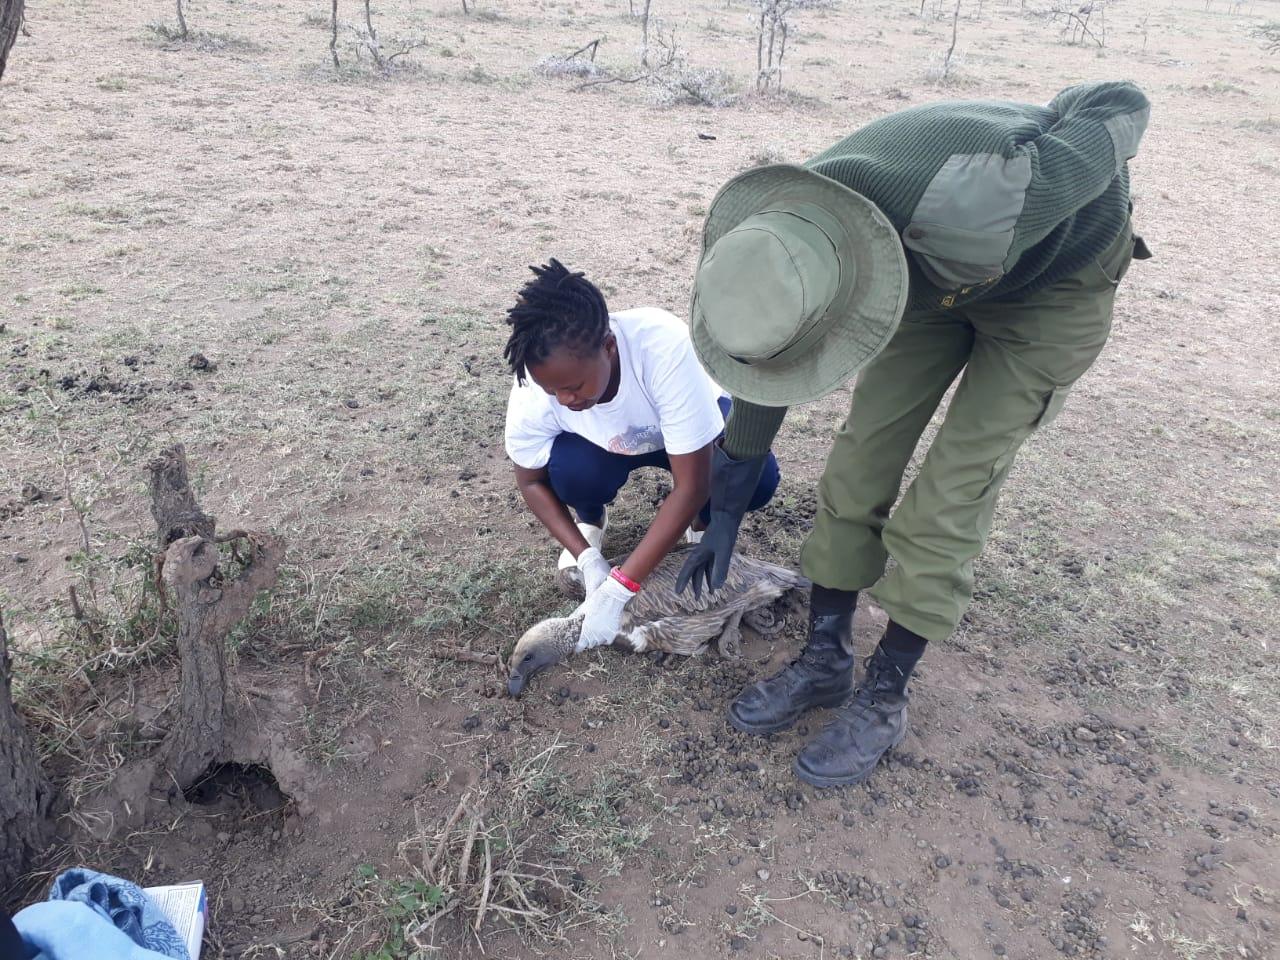 Valerie Nasoita and a ranger work to provide care to a sick vulture